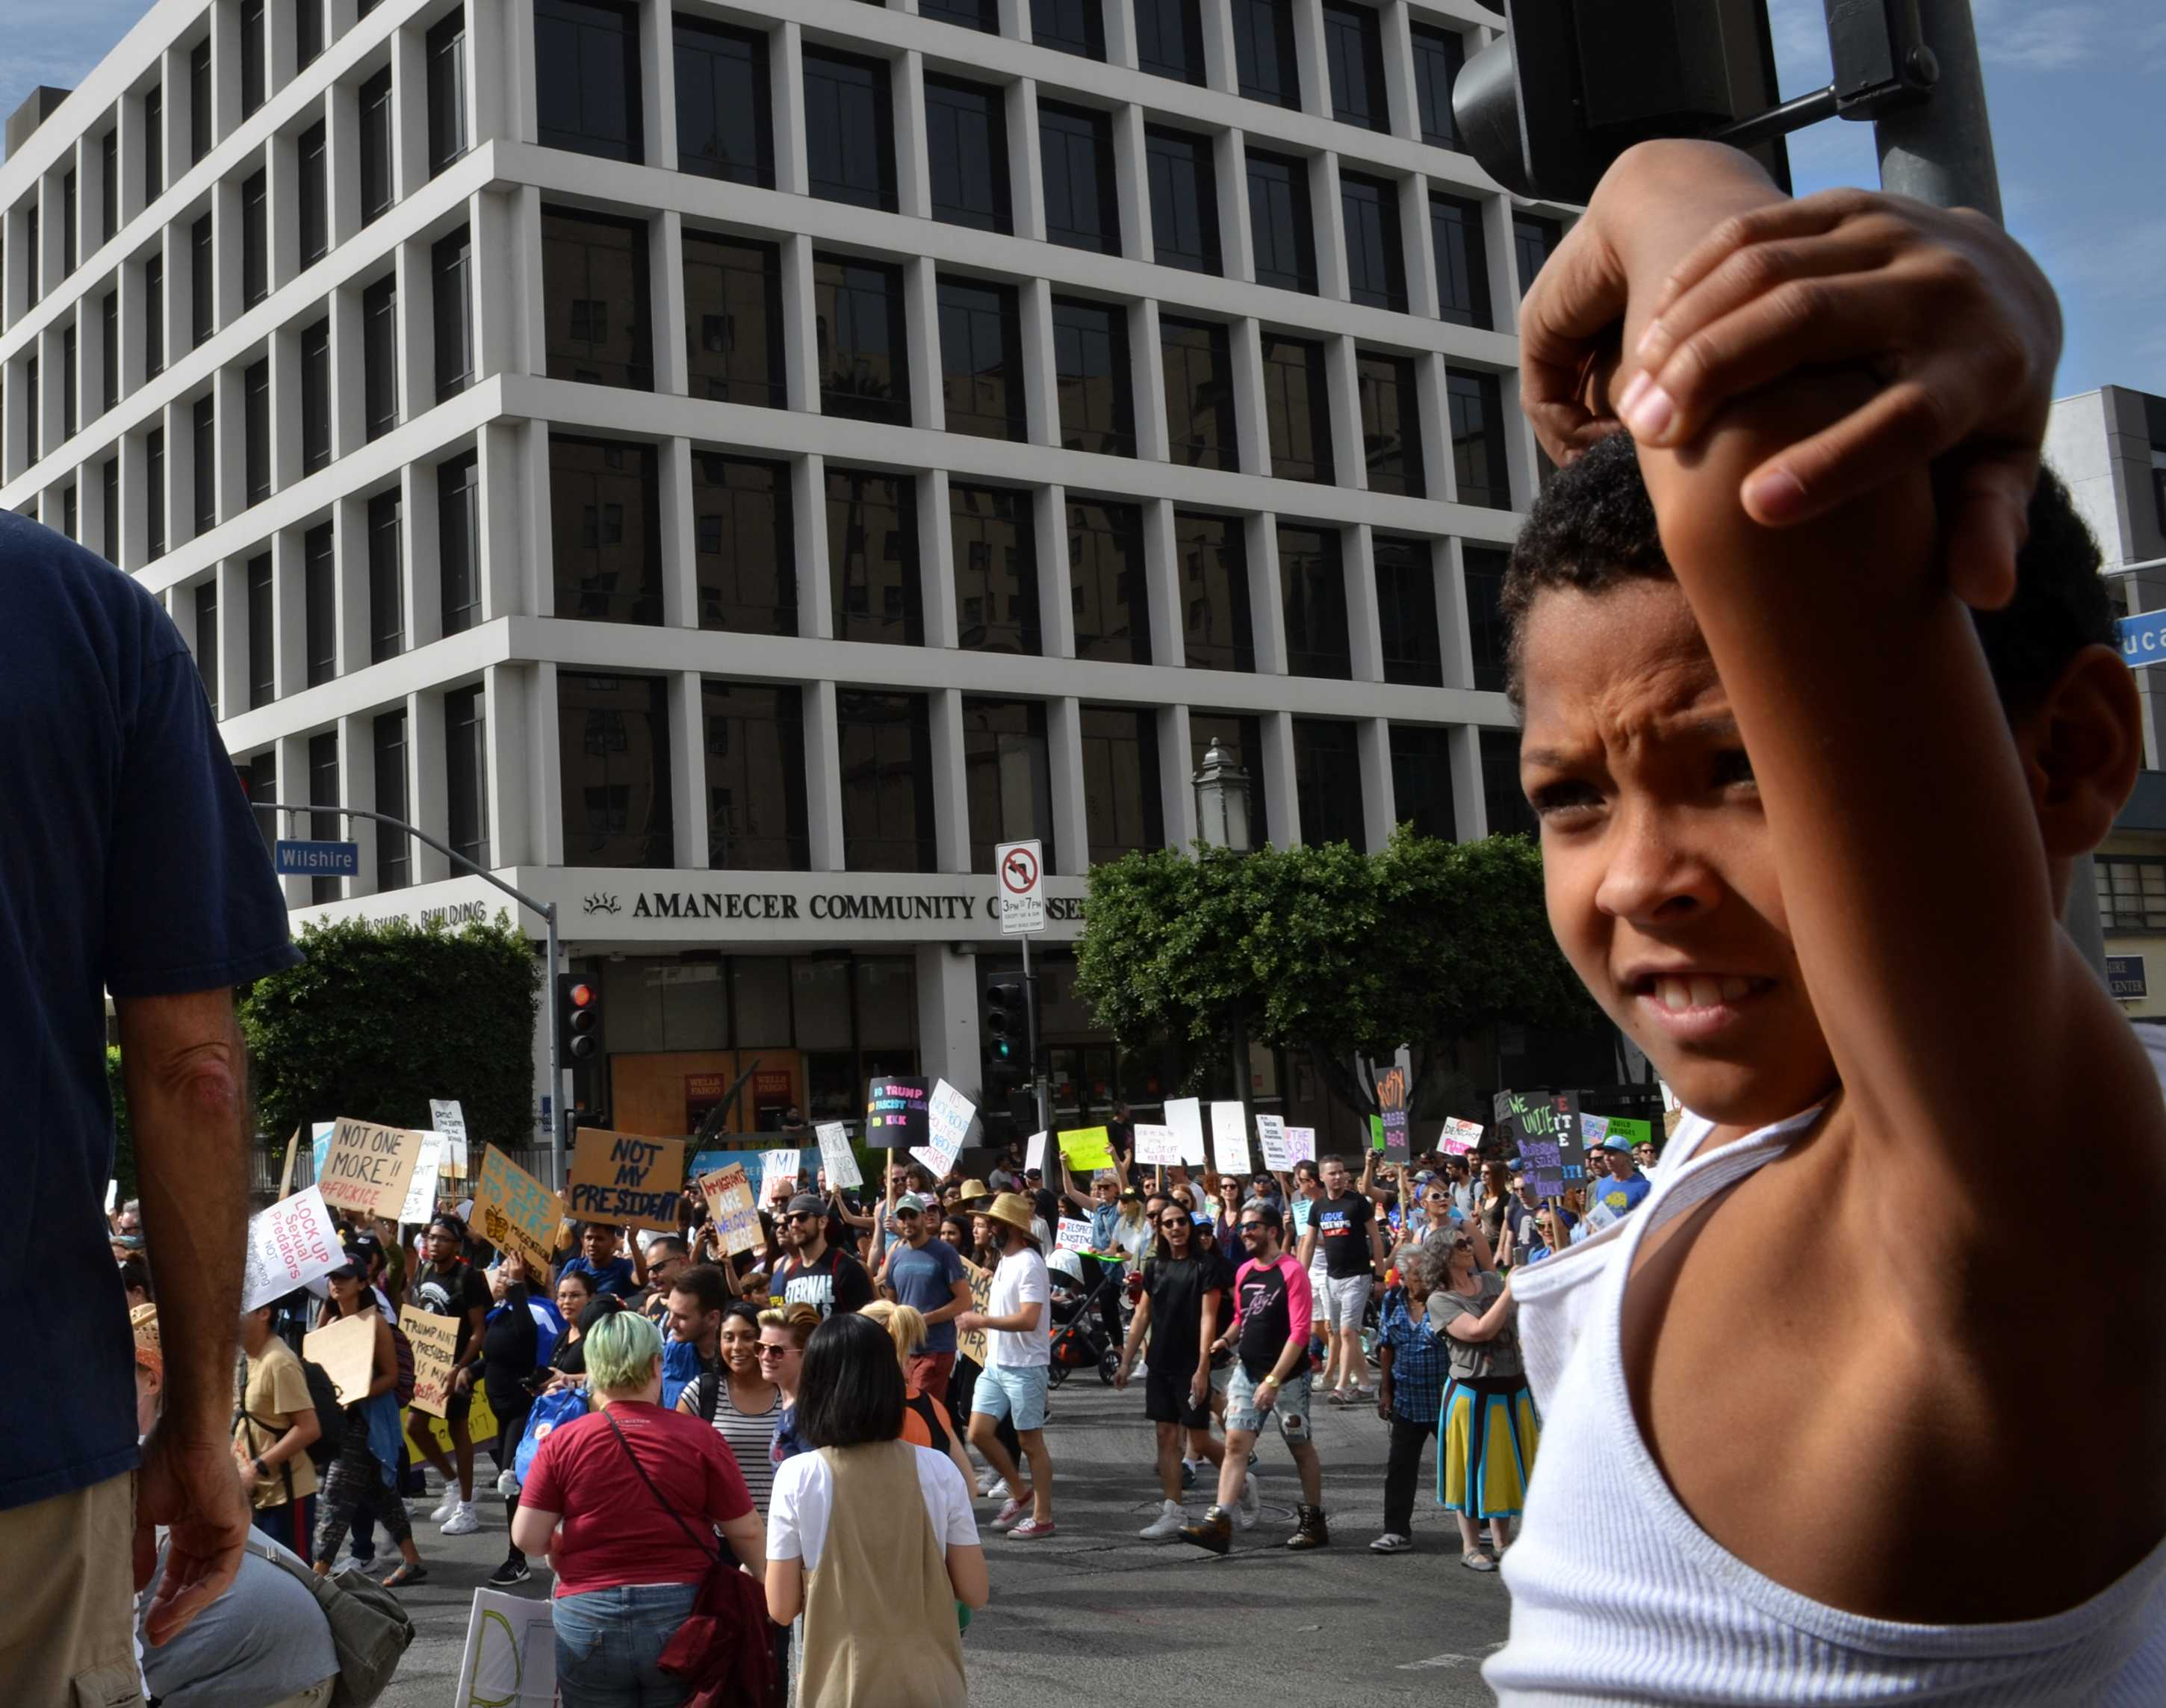 Child is shown next to large group of protesters